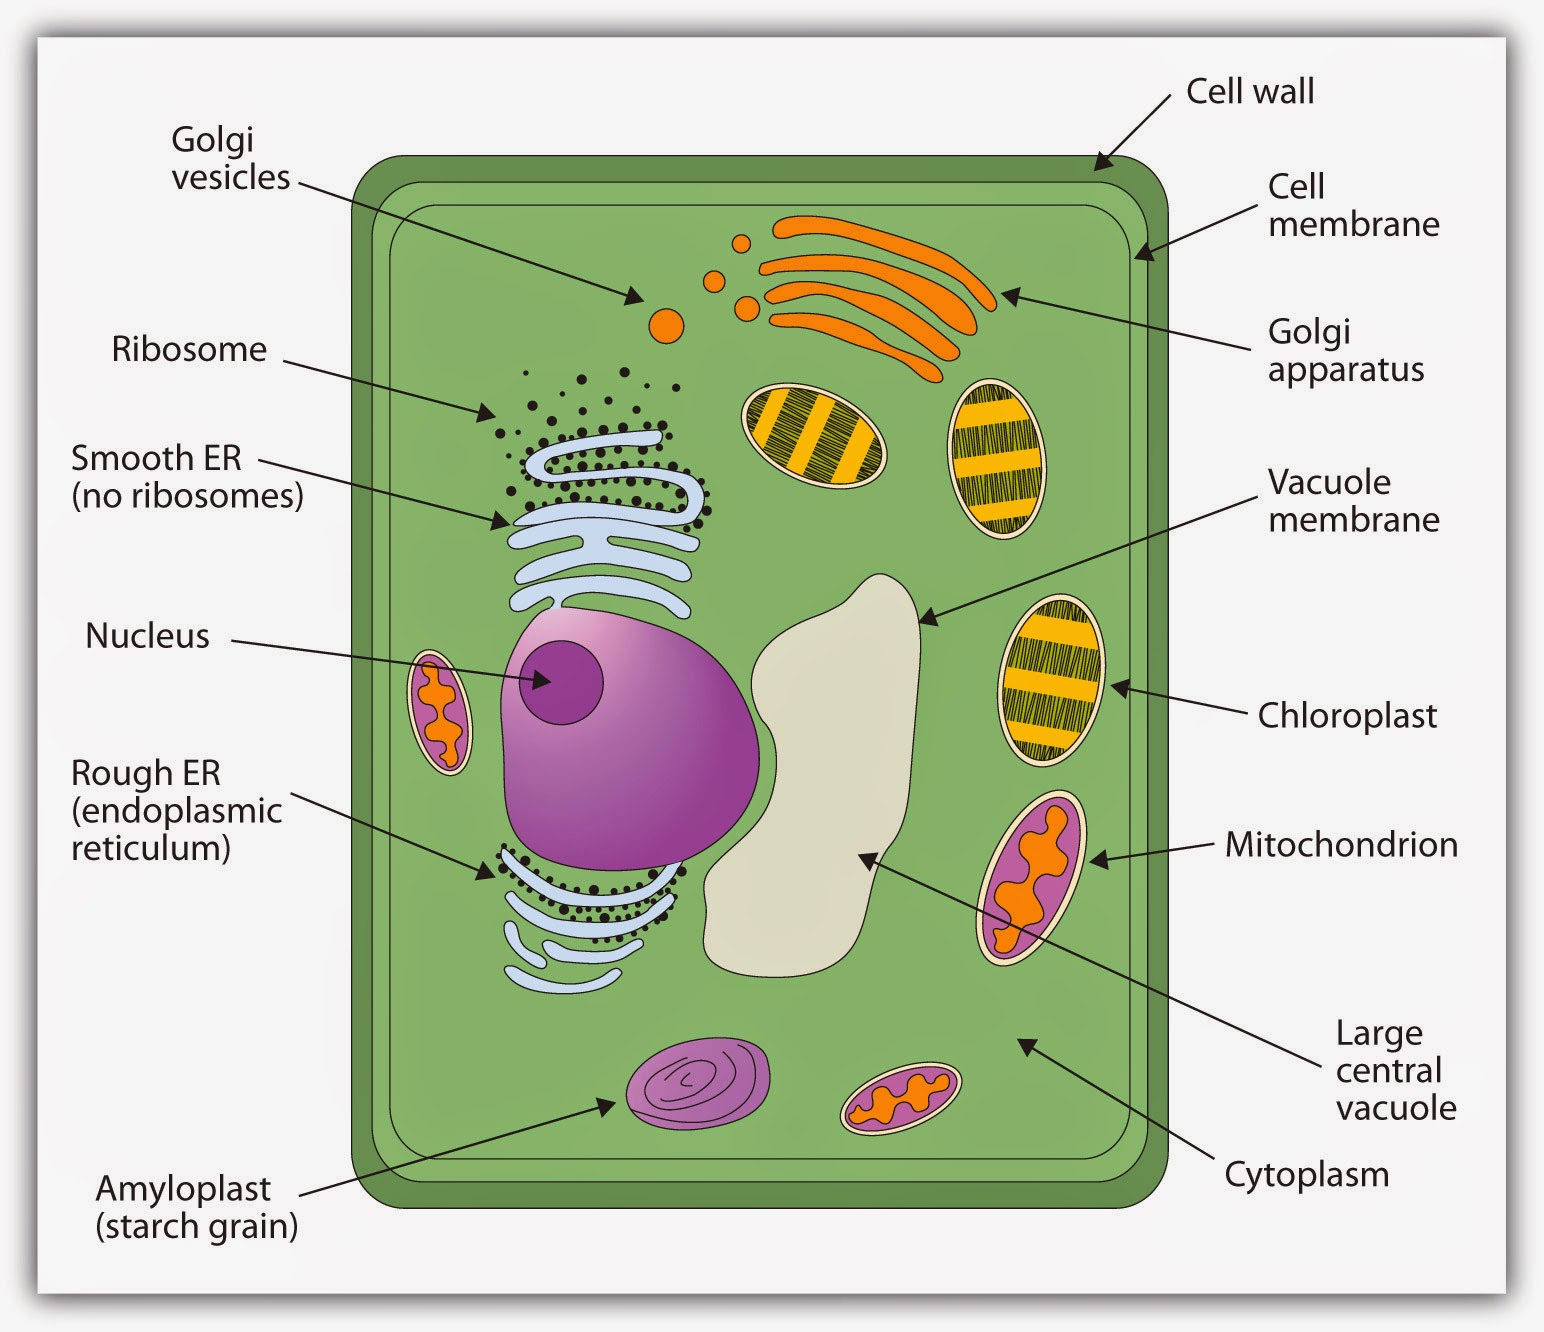 Natasha 06 21 14 Simplebiogasdigesterdiagramjpg In A Plant Cell The Wall Is Outermost Covering Made Up Of Cellulose Which Gives Plants Their Strength